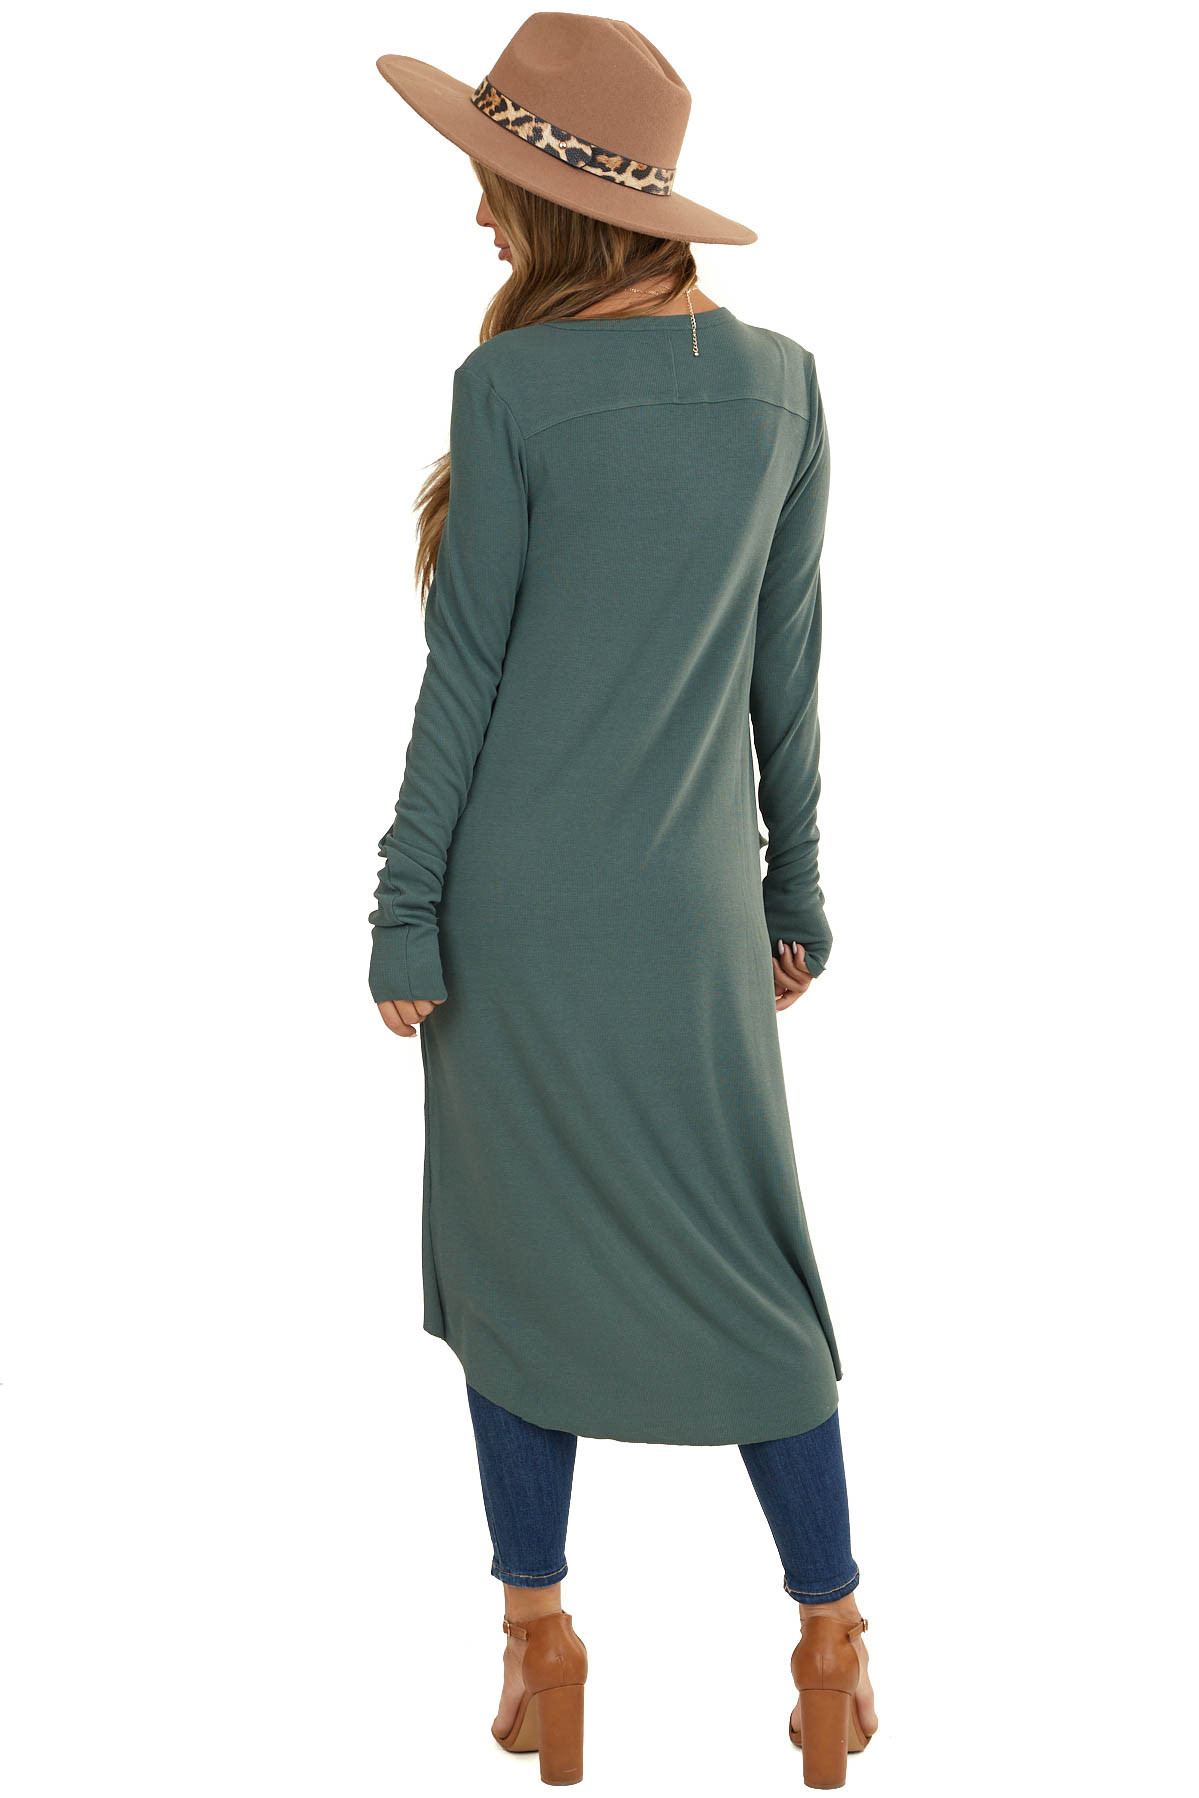 Jade Green Long Sleeve Button Down Duster Cardigan